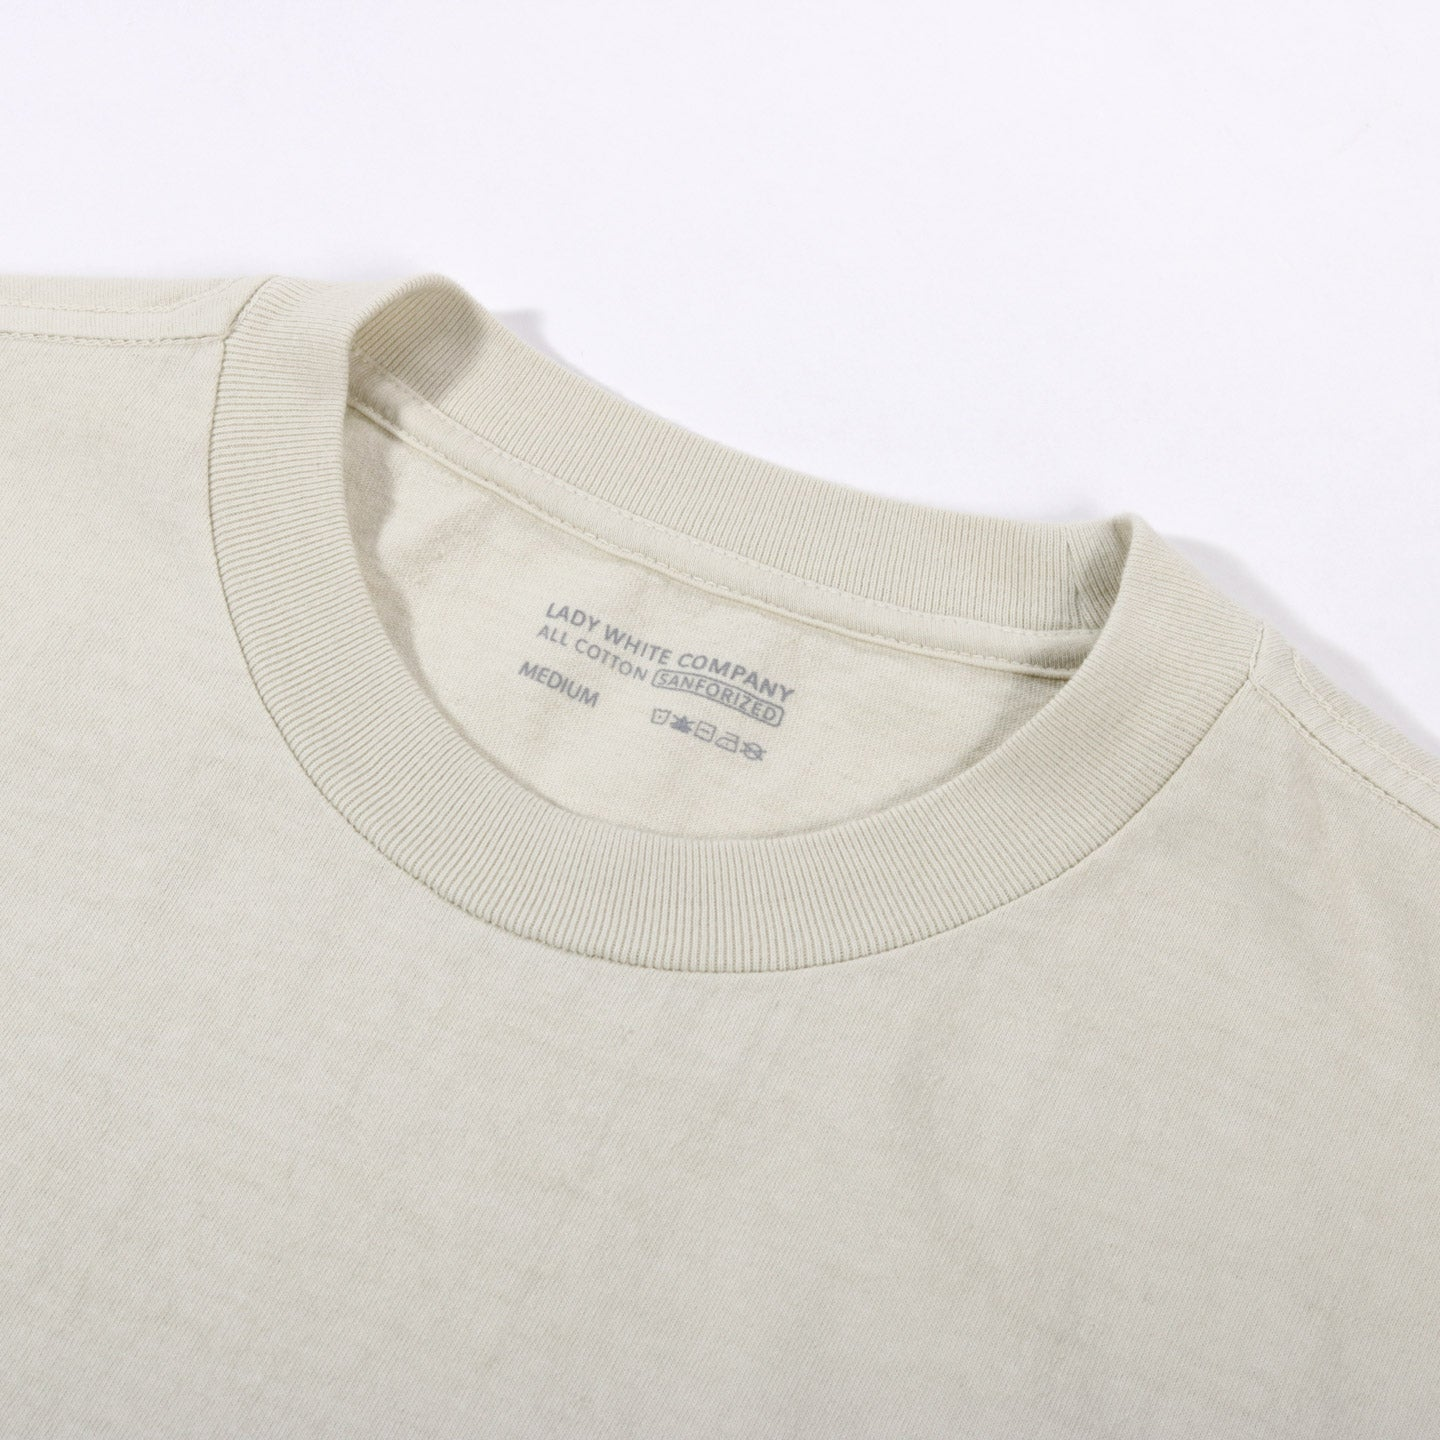 LADY WHITE CO. BALTA POCKET T-SHIRT BONE